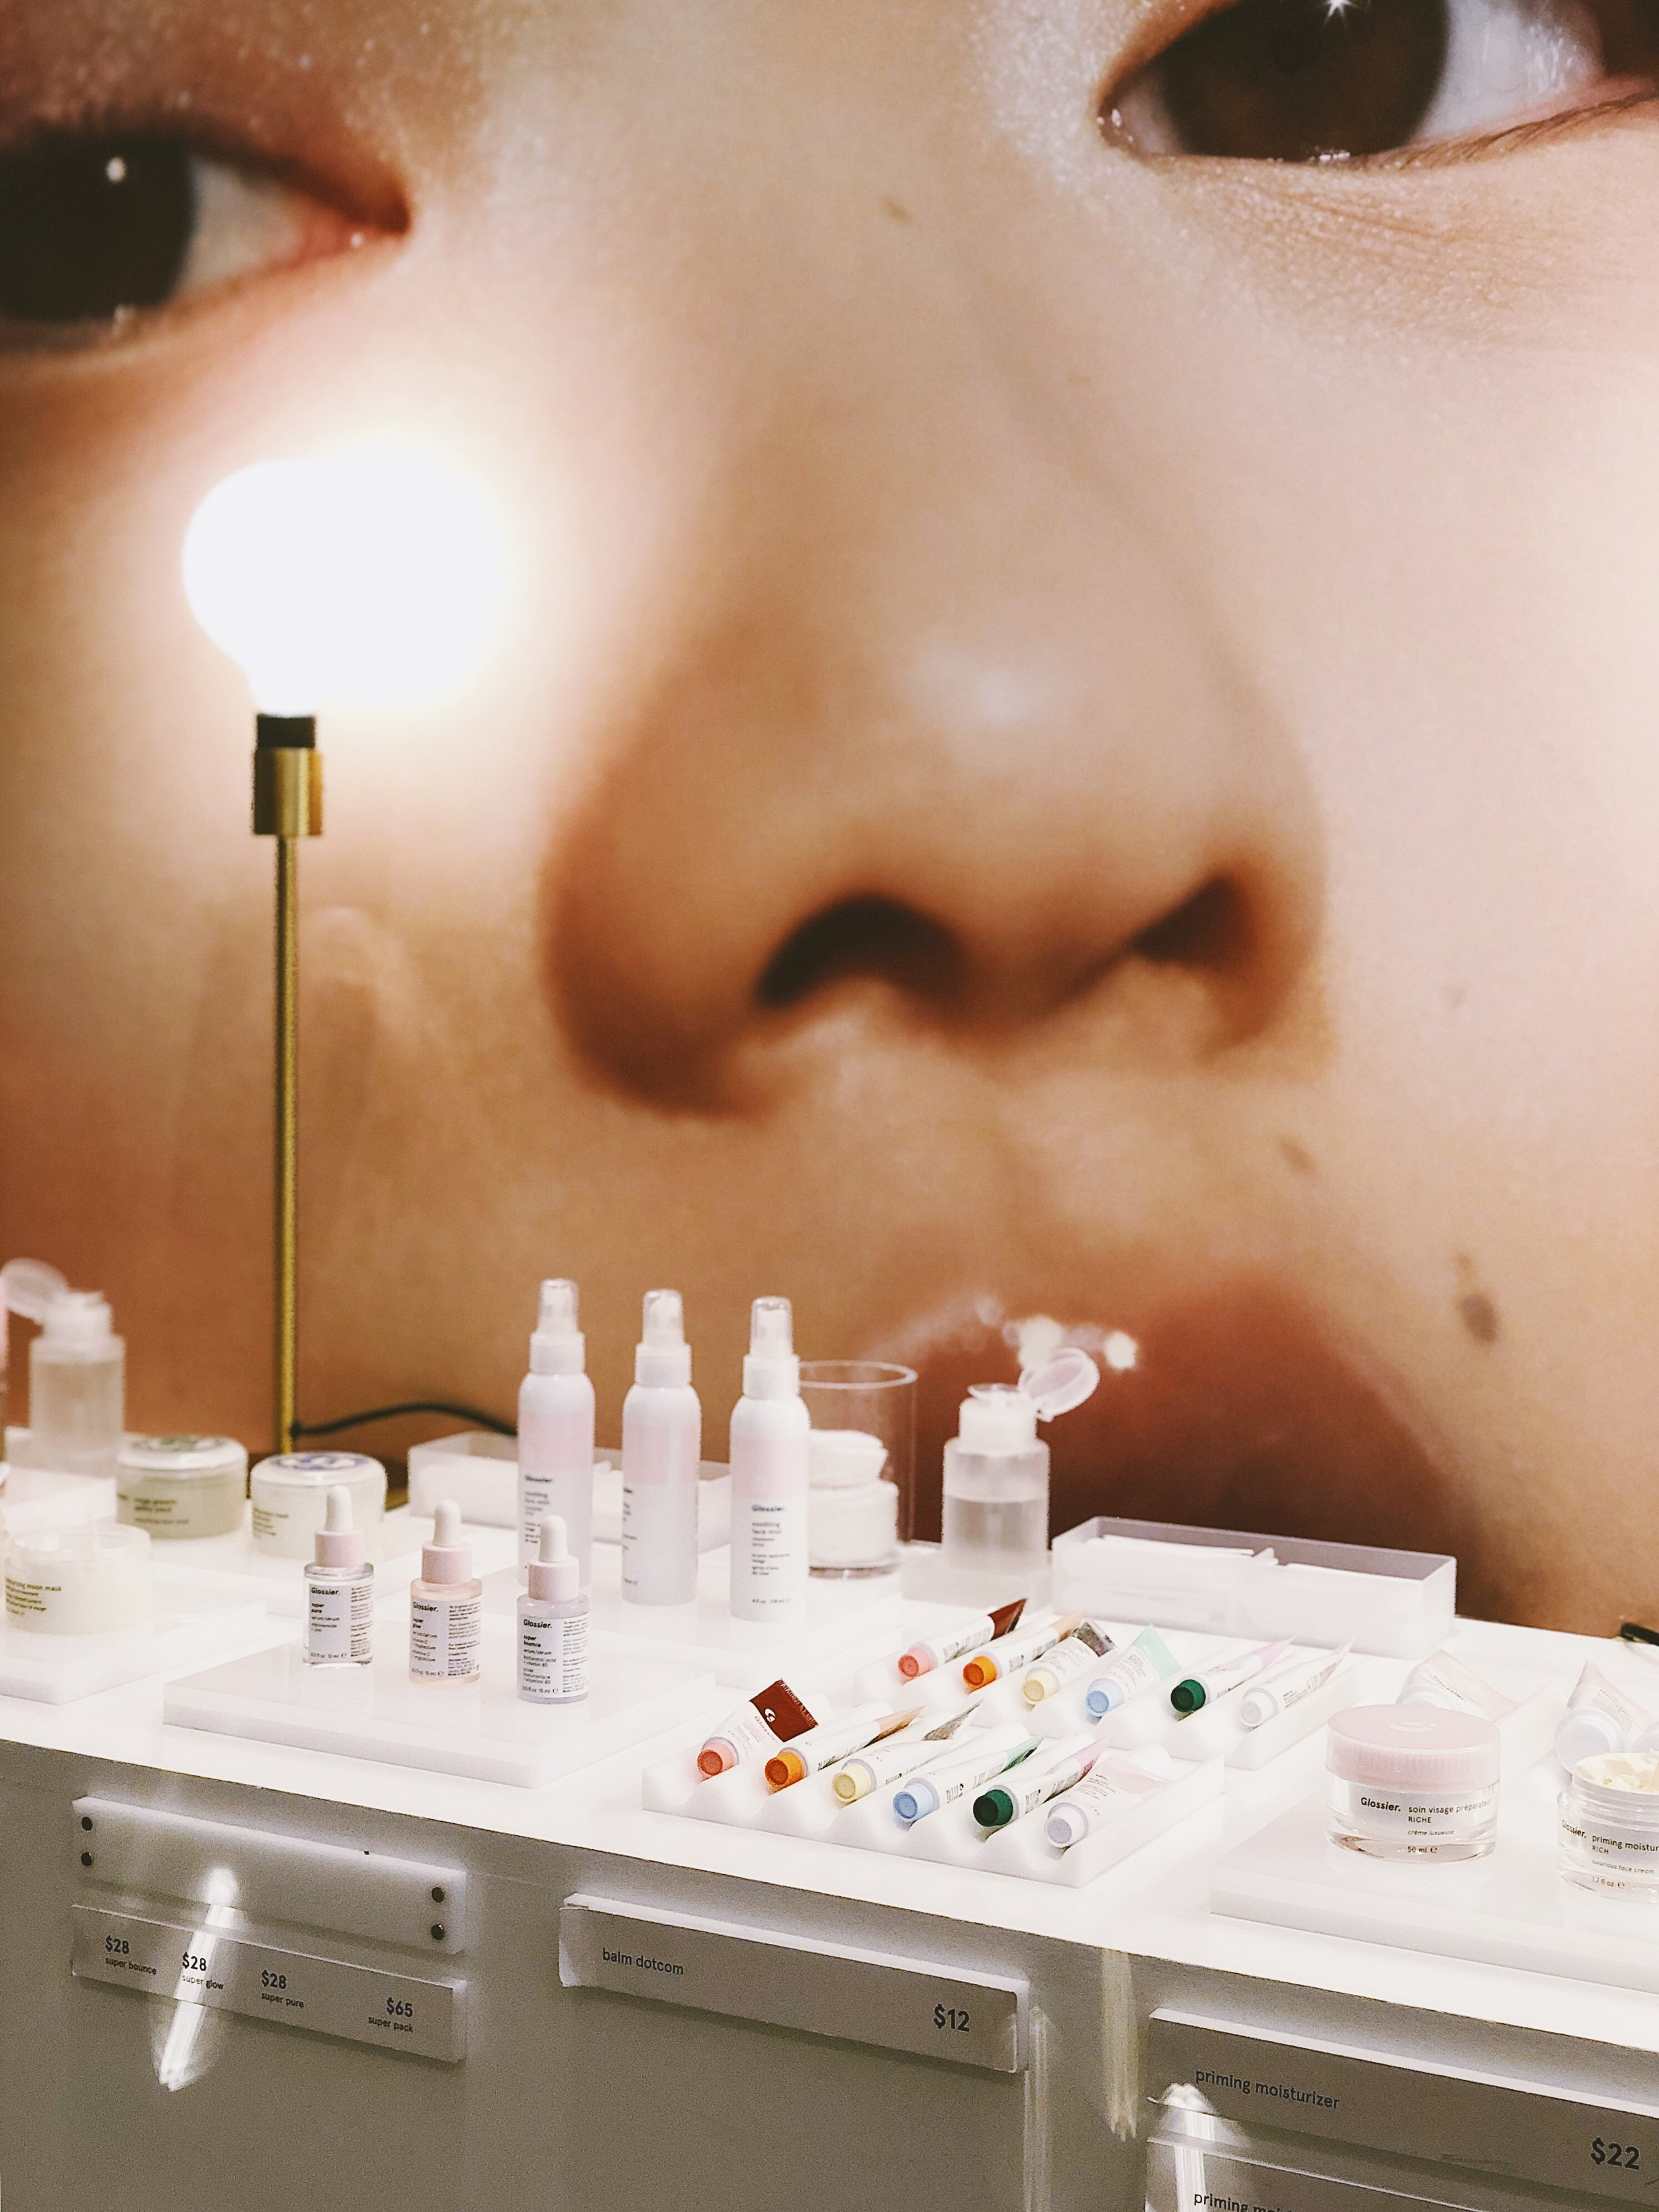 Glossier Pop-up shop in San Francisco